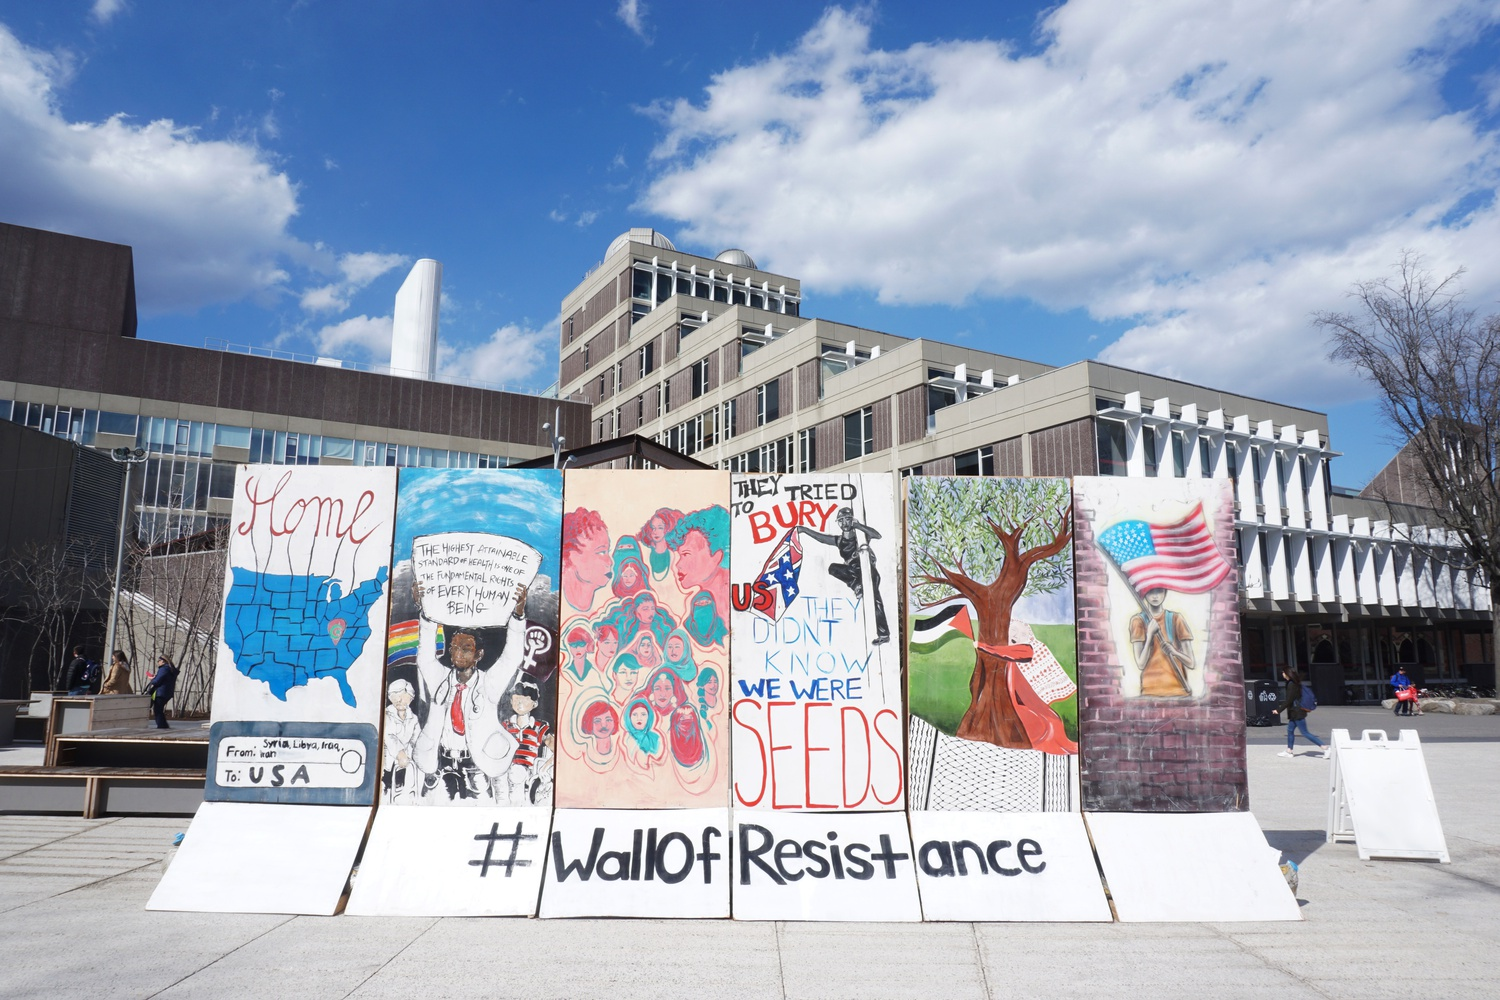 In past years, members of the Palestine Solidarity Committee, along with other activist groups, have displayed a public art project called the Wall of Resistance in Science Center Plaza during their annual Israeli Apartheid Week. This year, the programming was held virtually.